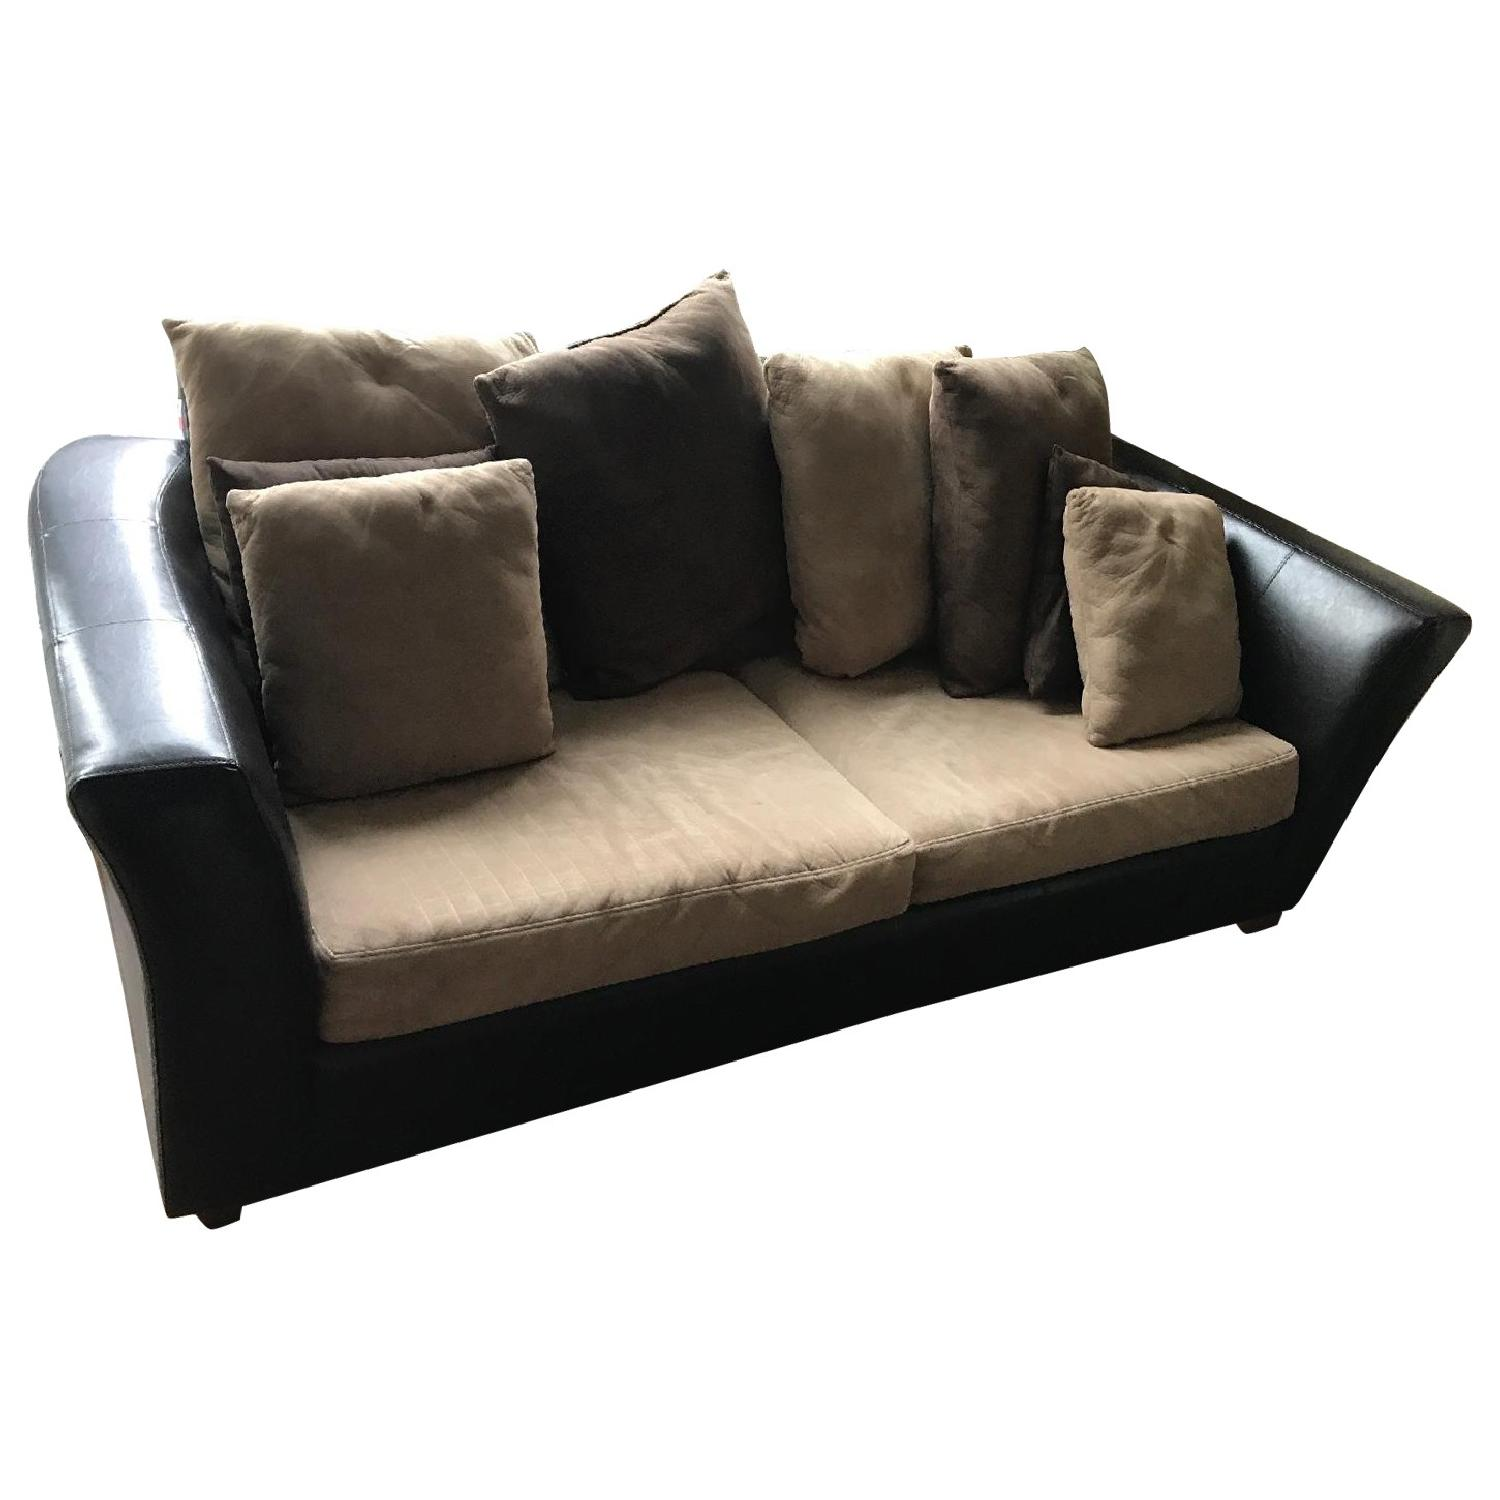 ikea sofa leather faux sleeper fortable lovely loveseat of